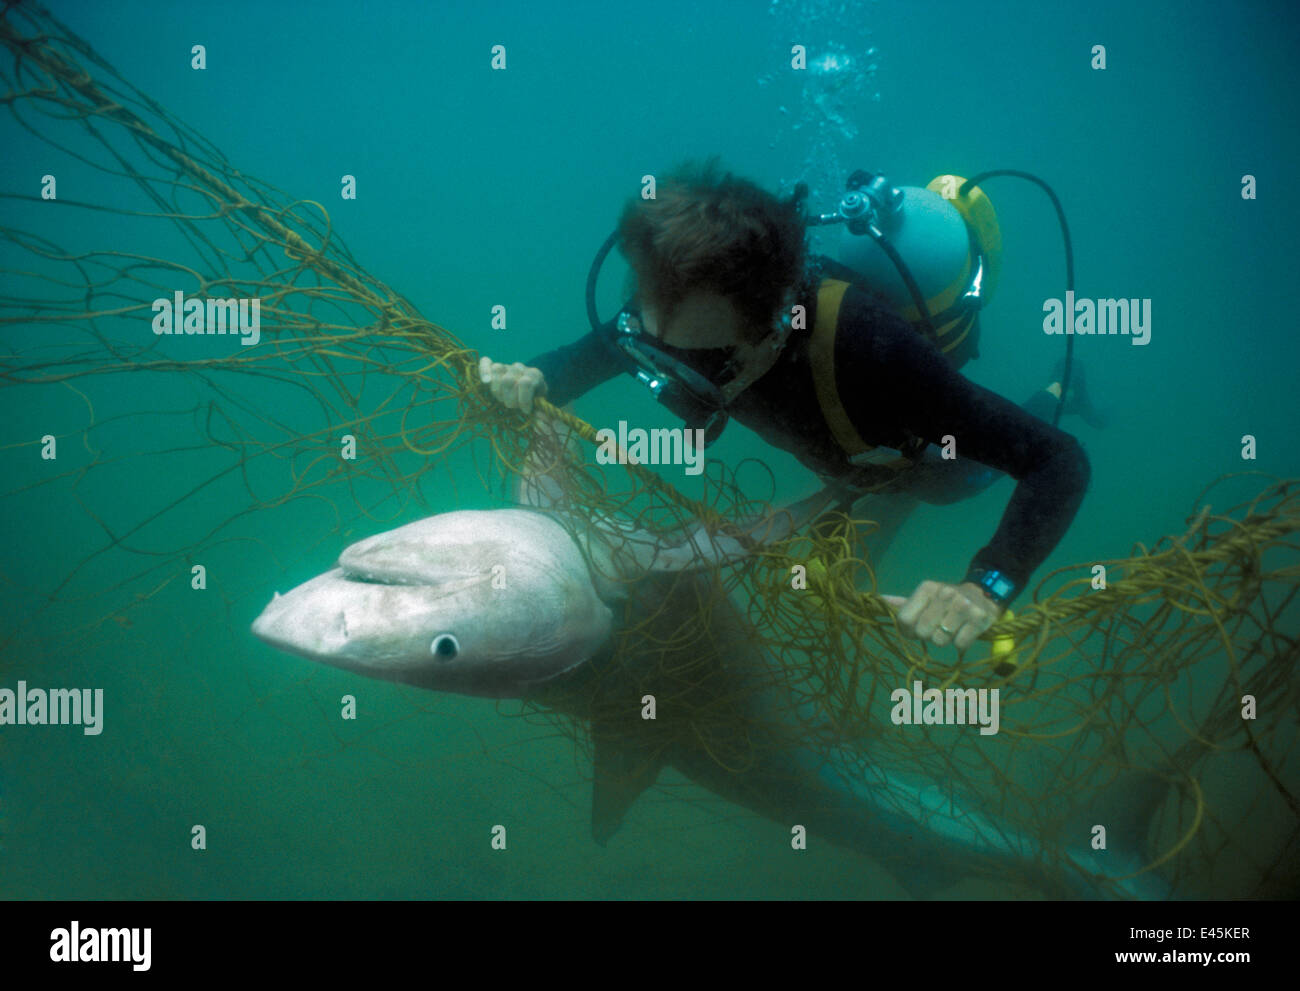 Sequence 2/3 Diver with anti-shark POD examininf Tiger shark (Galeocerdo cuvier) caught in anti-shark net off Durban Stock Photo